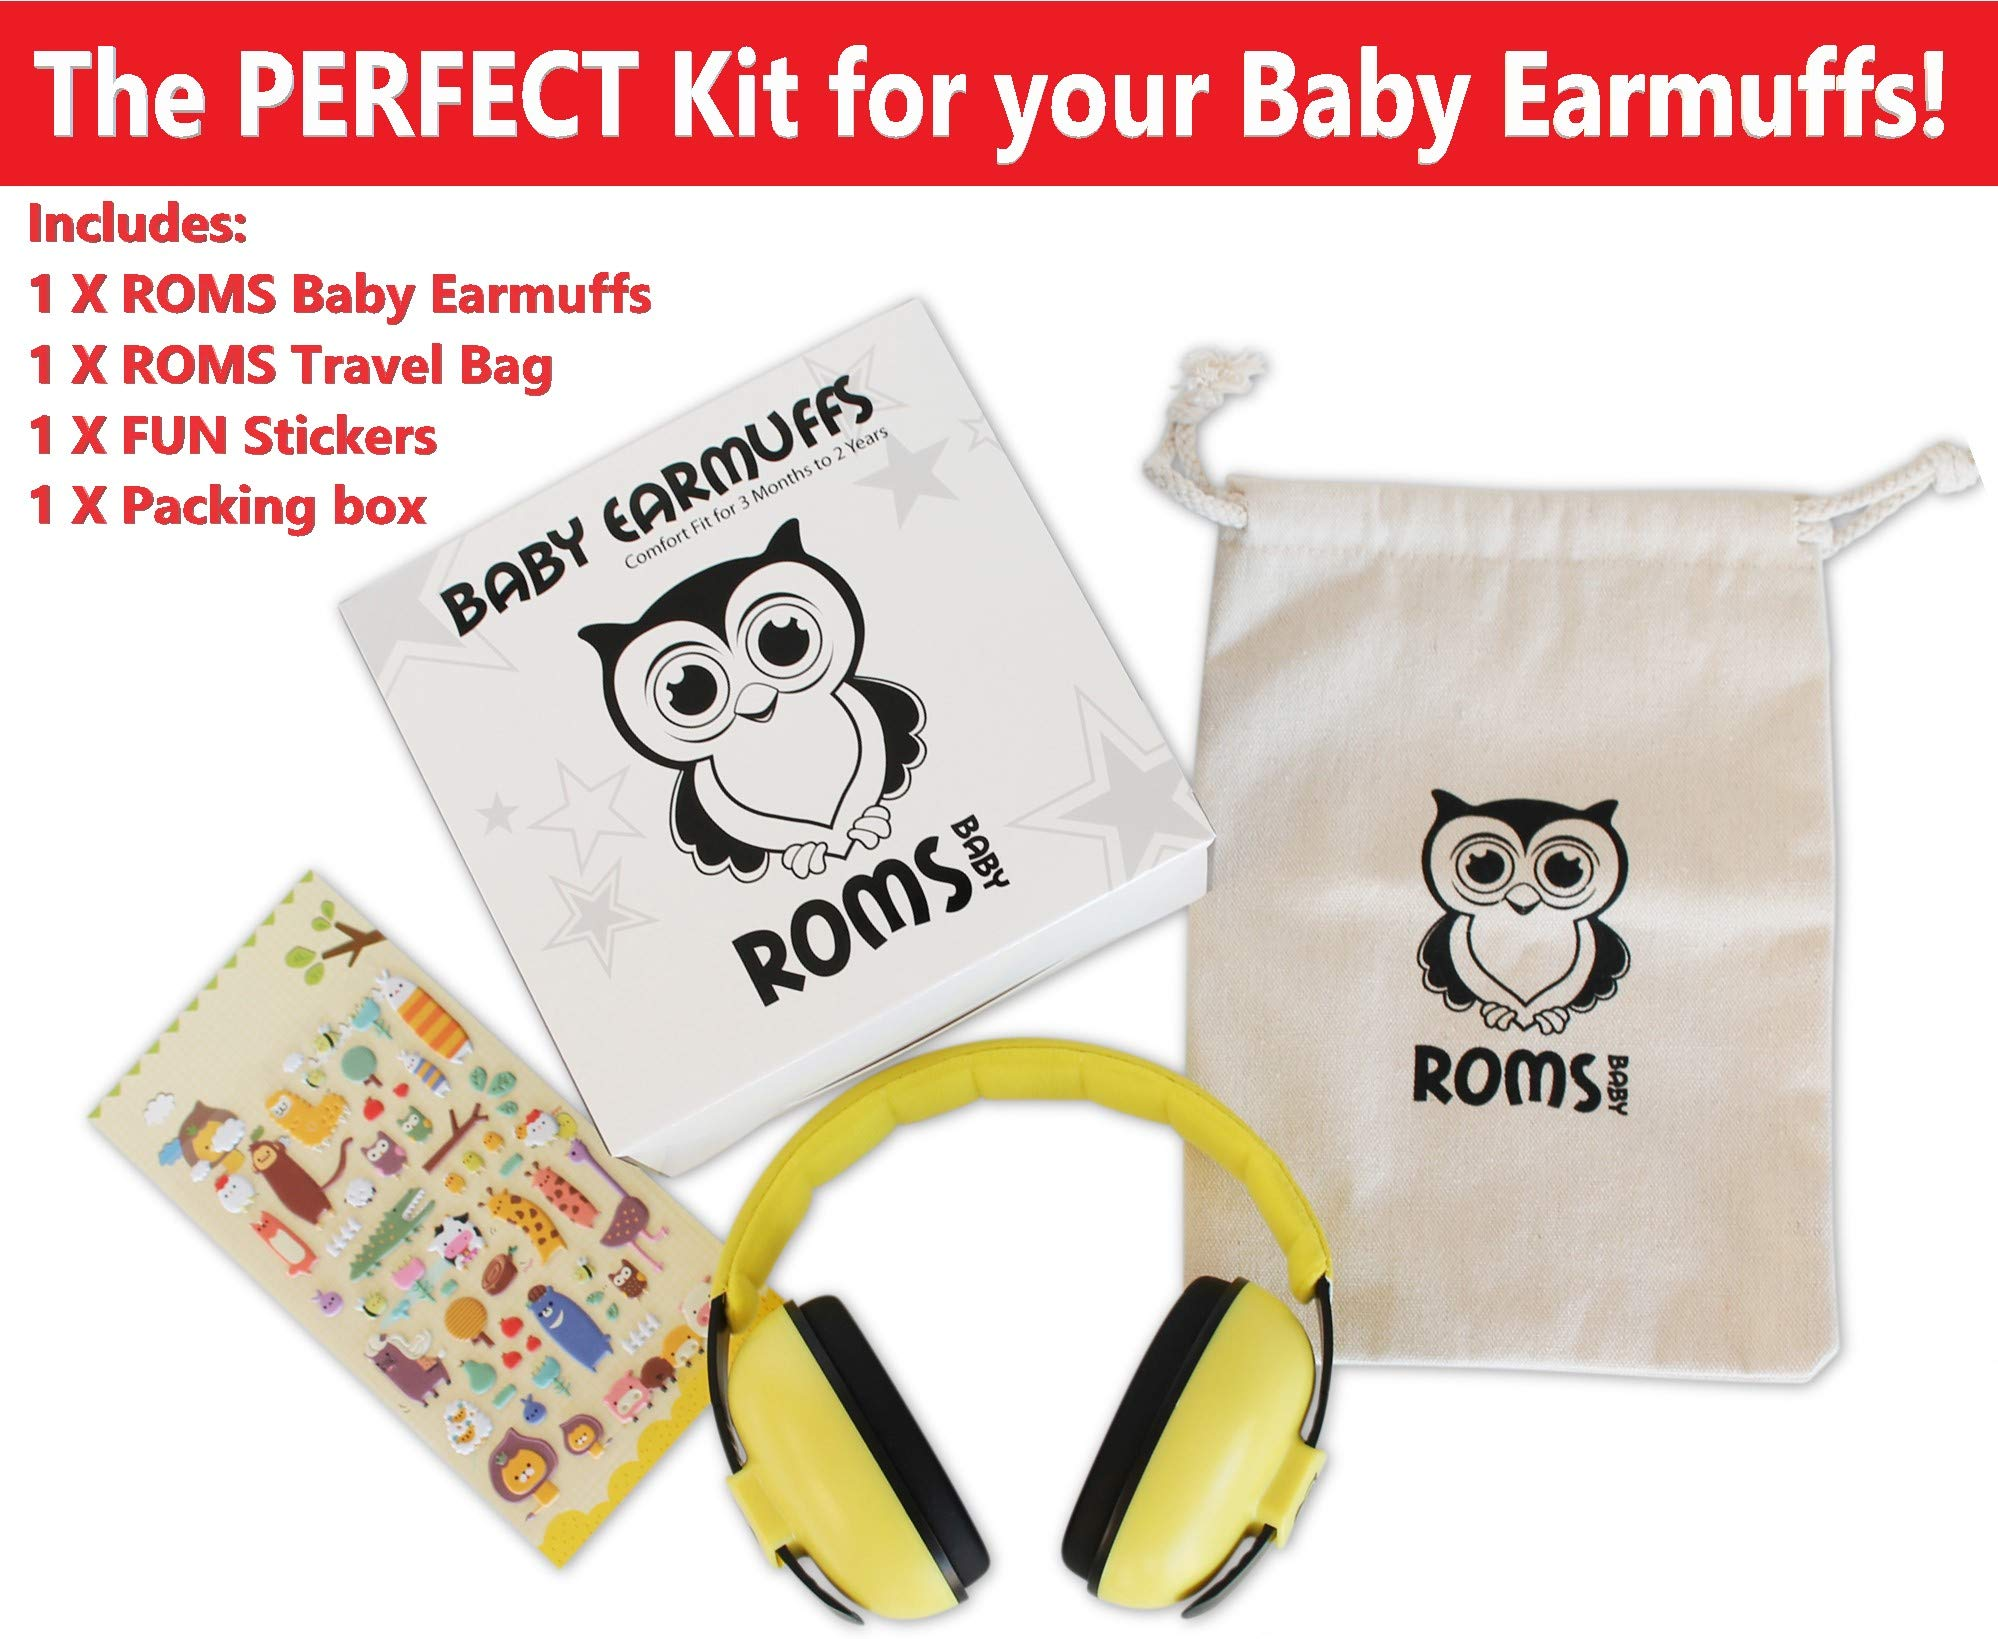 Noise Cancelling Baby Ear Protection Baby Earmuffs ~ Protect Infants and Kids Hearing with Safe, Sound Proof Baby Ear Muffs ~ Comfort Fit + Bonus Travel Bag and Stickers by ROMS Baby (Yellow)